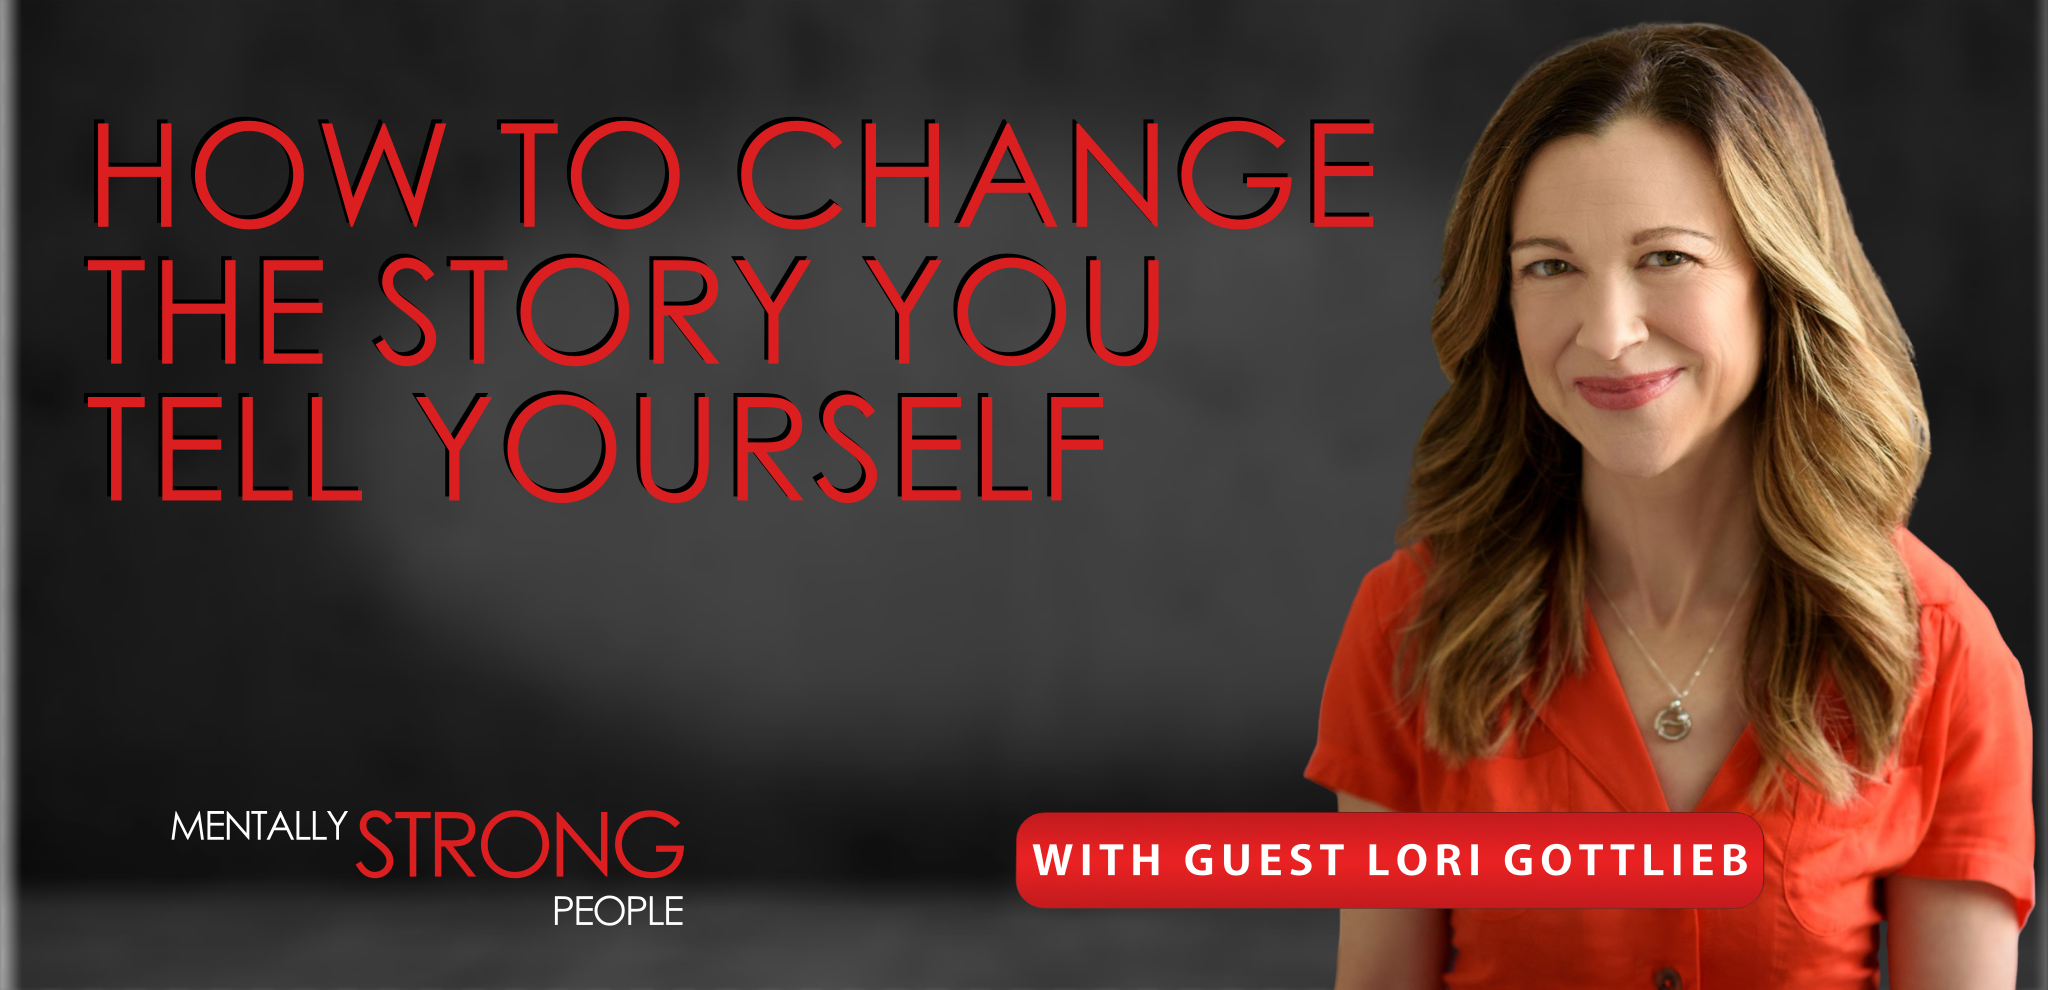 How To Change The Story You Tell Yourself With Psychotherapist Lori Gottlieb Amy Morin Lcsw